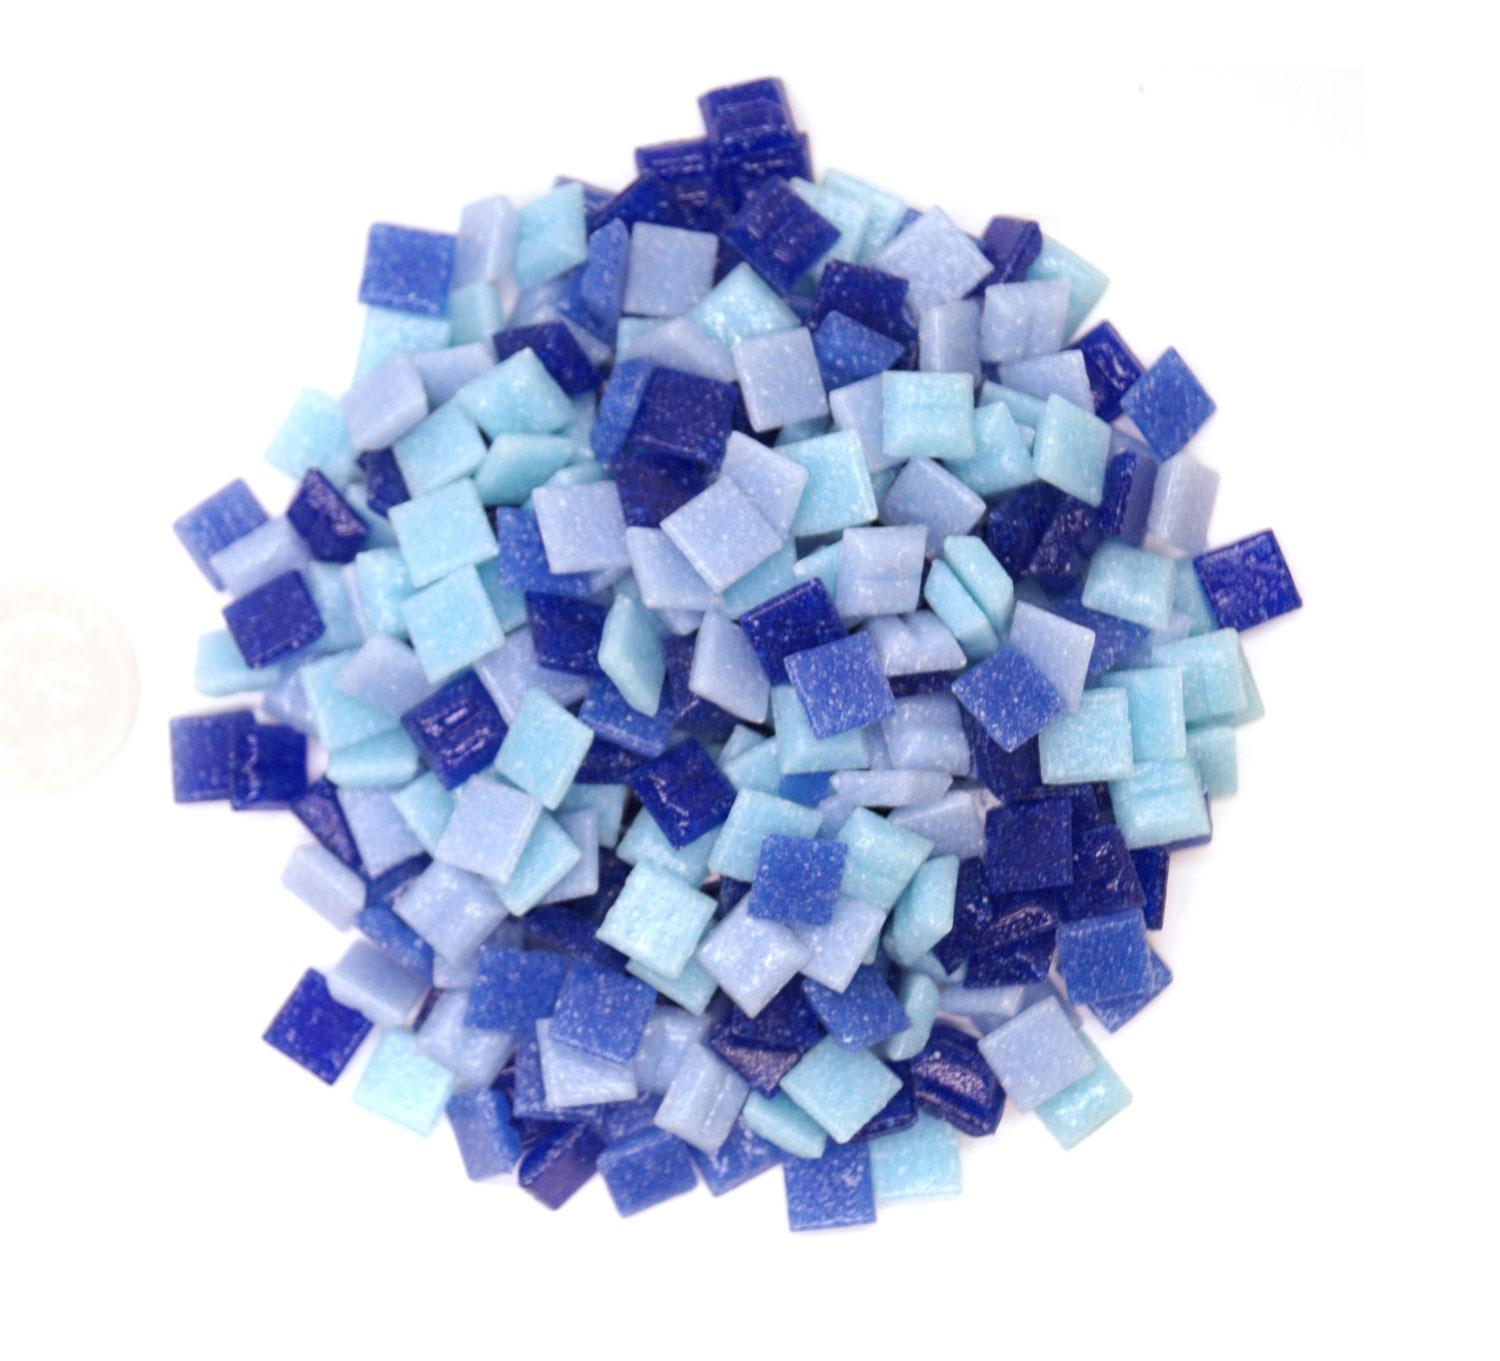 3/8 Denim Glass Tile Mix - 1/2 Lb